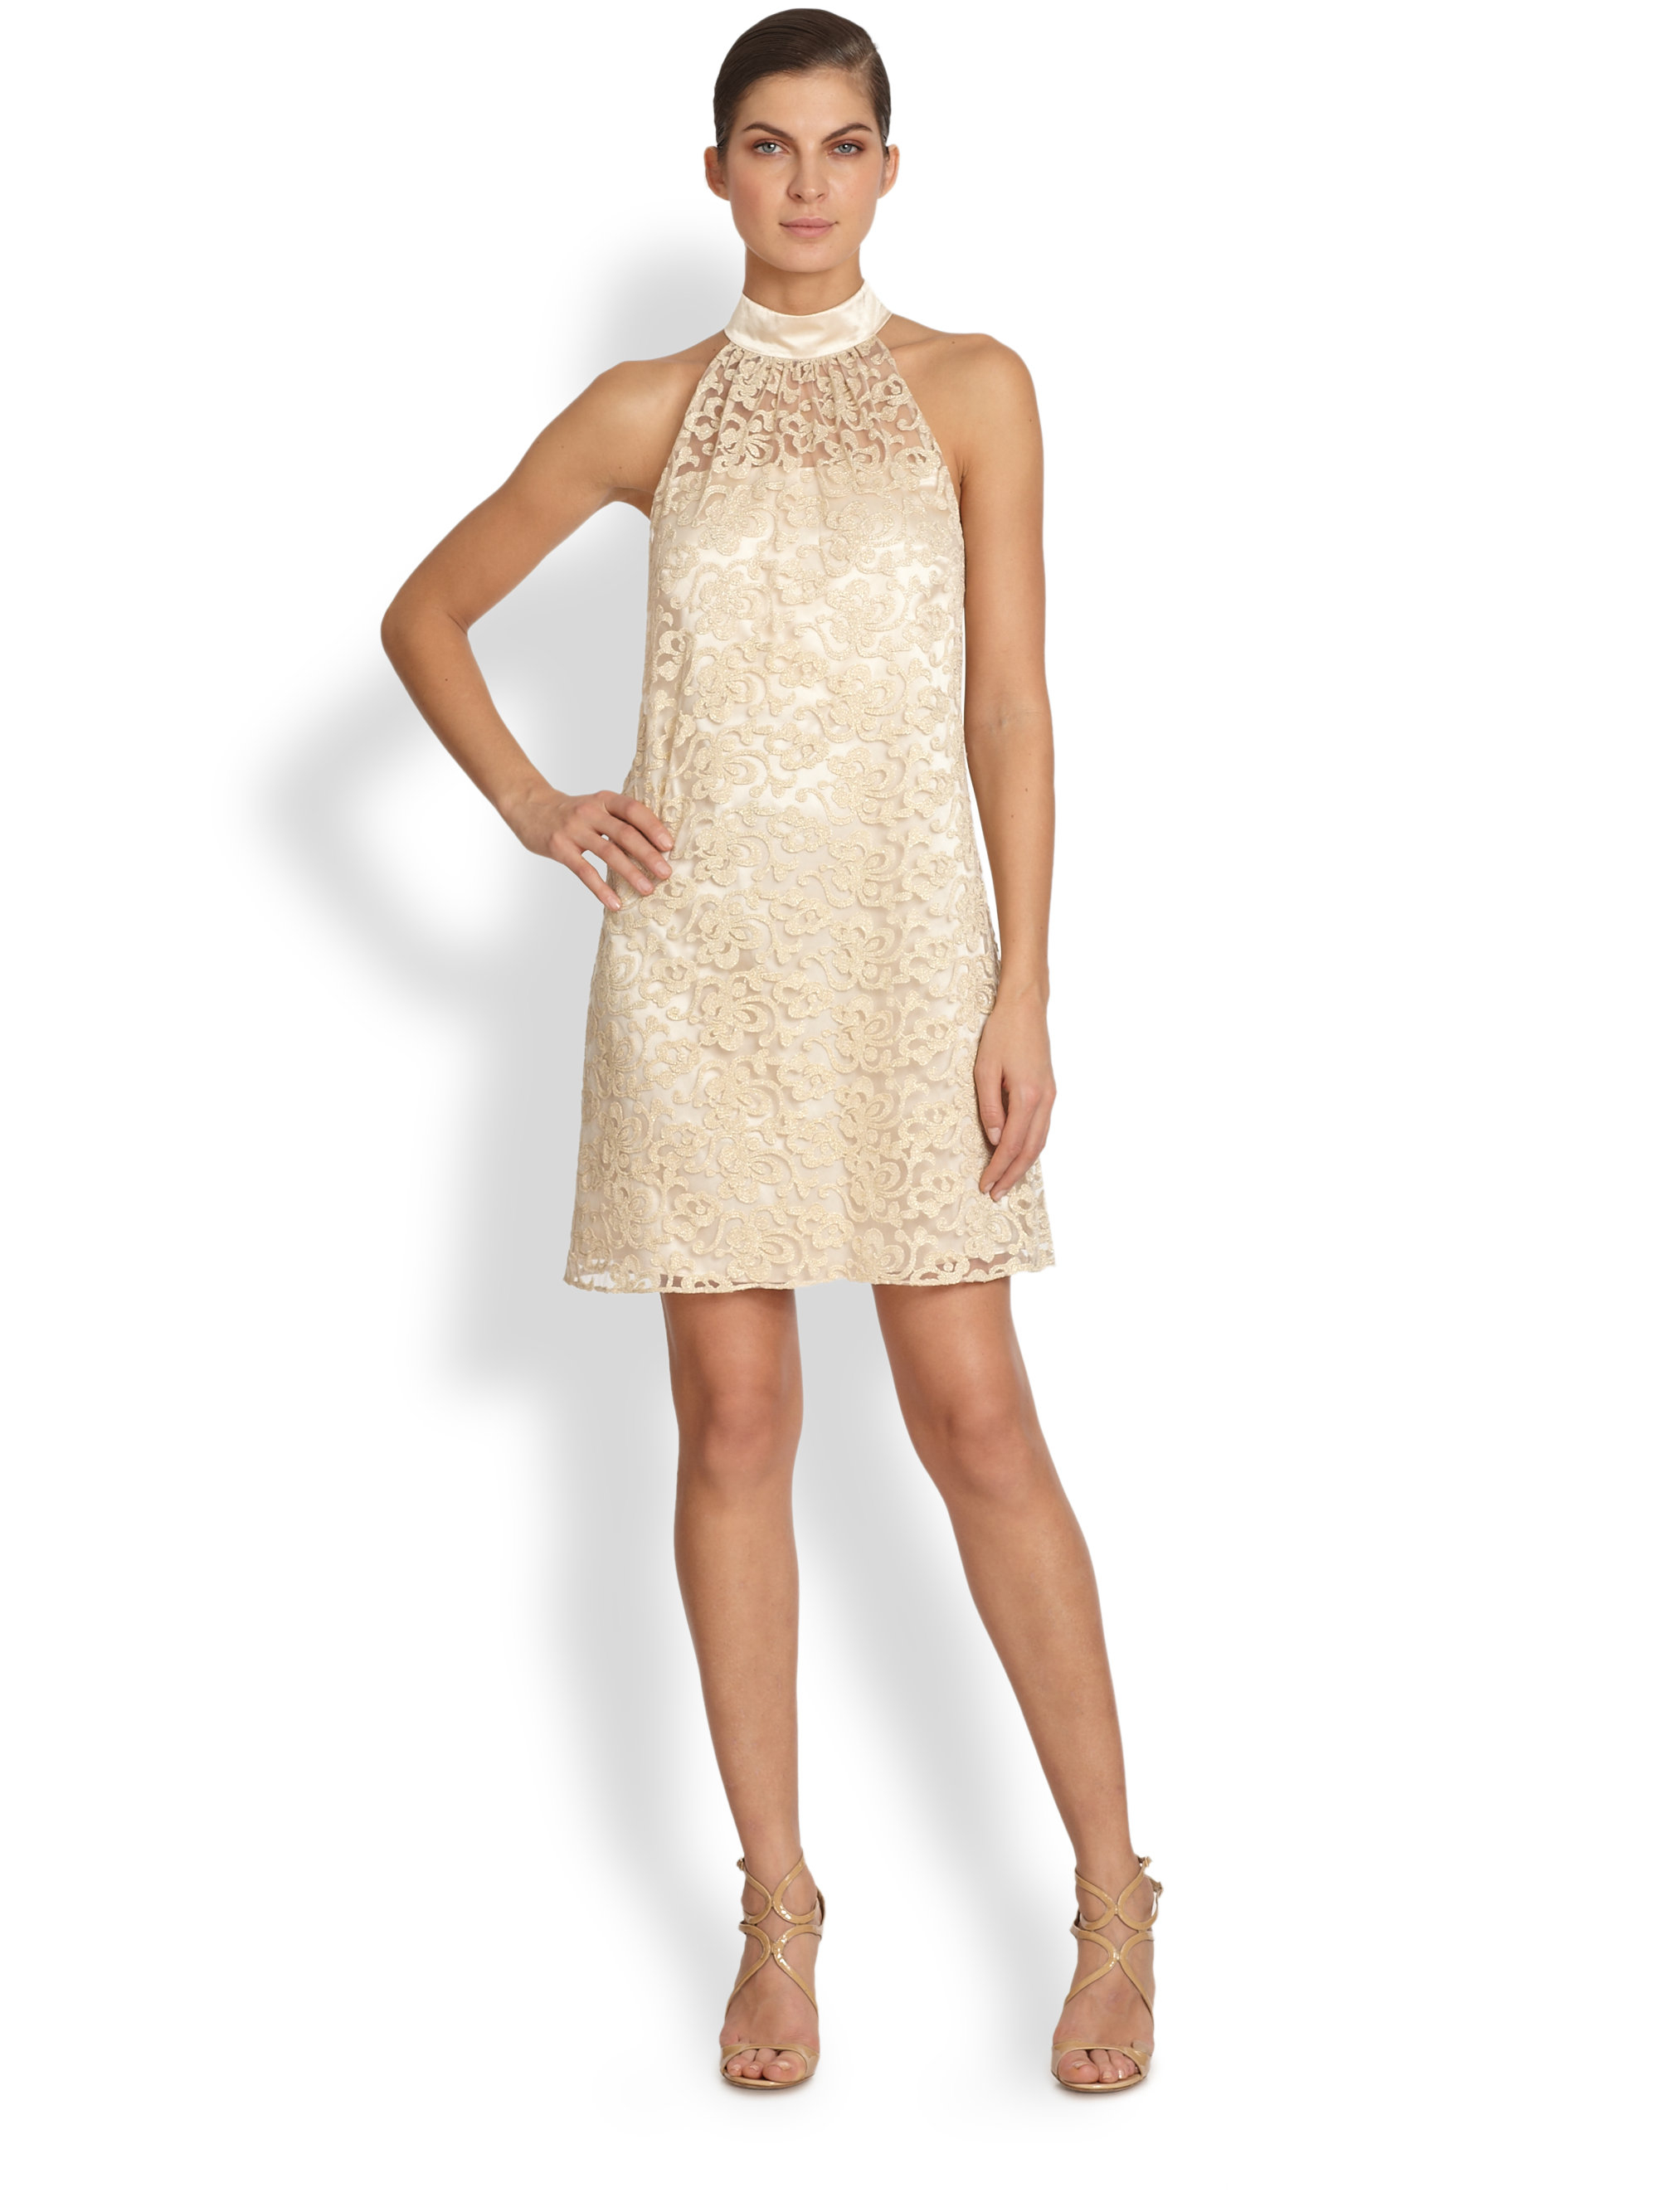 Laundry by shelli segal lace linen dress